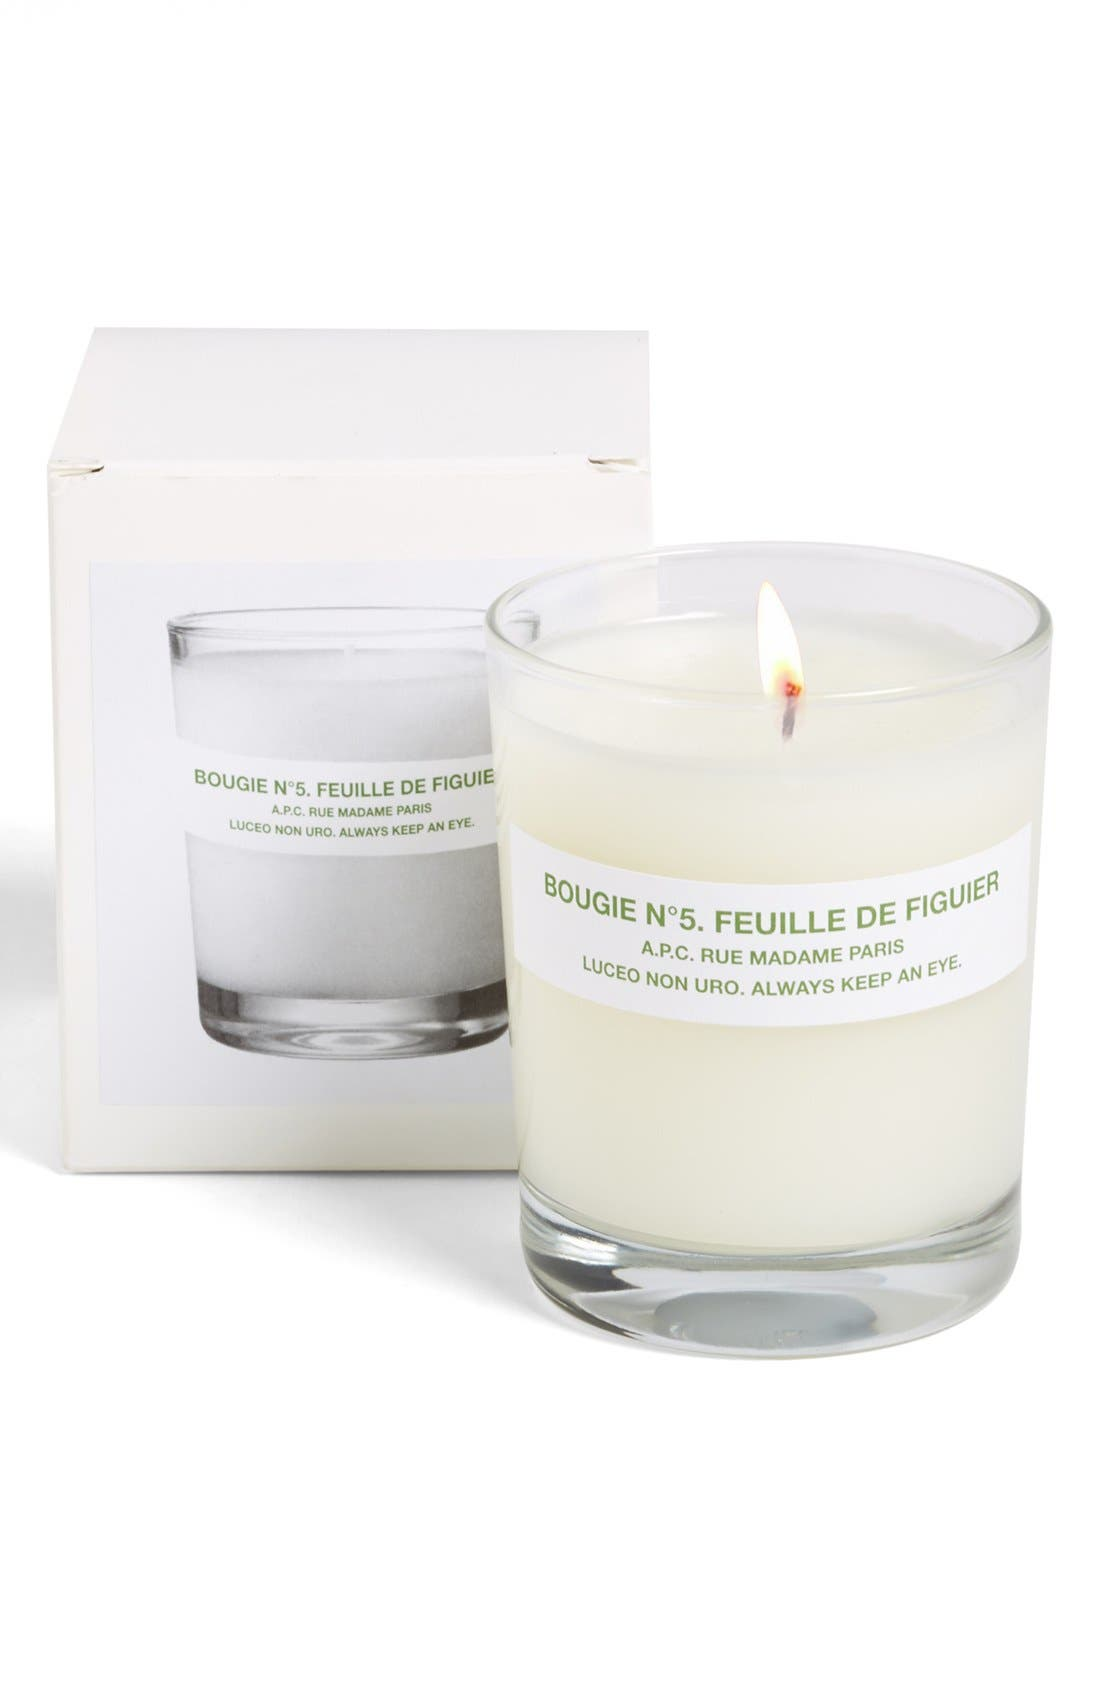 Alternate Image 1 Selected - A.P.C. 'Bougie Feuille de Figuier' Fig Scented Candle